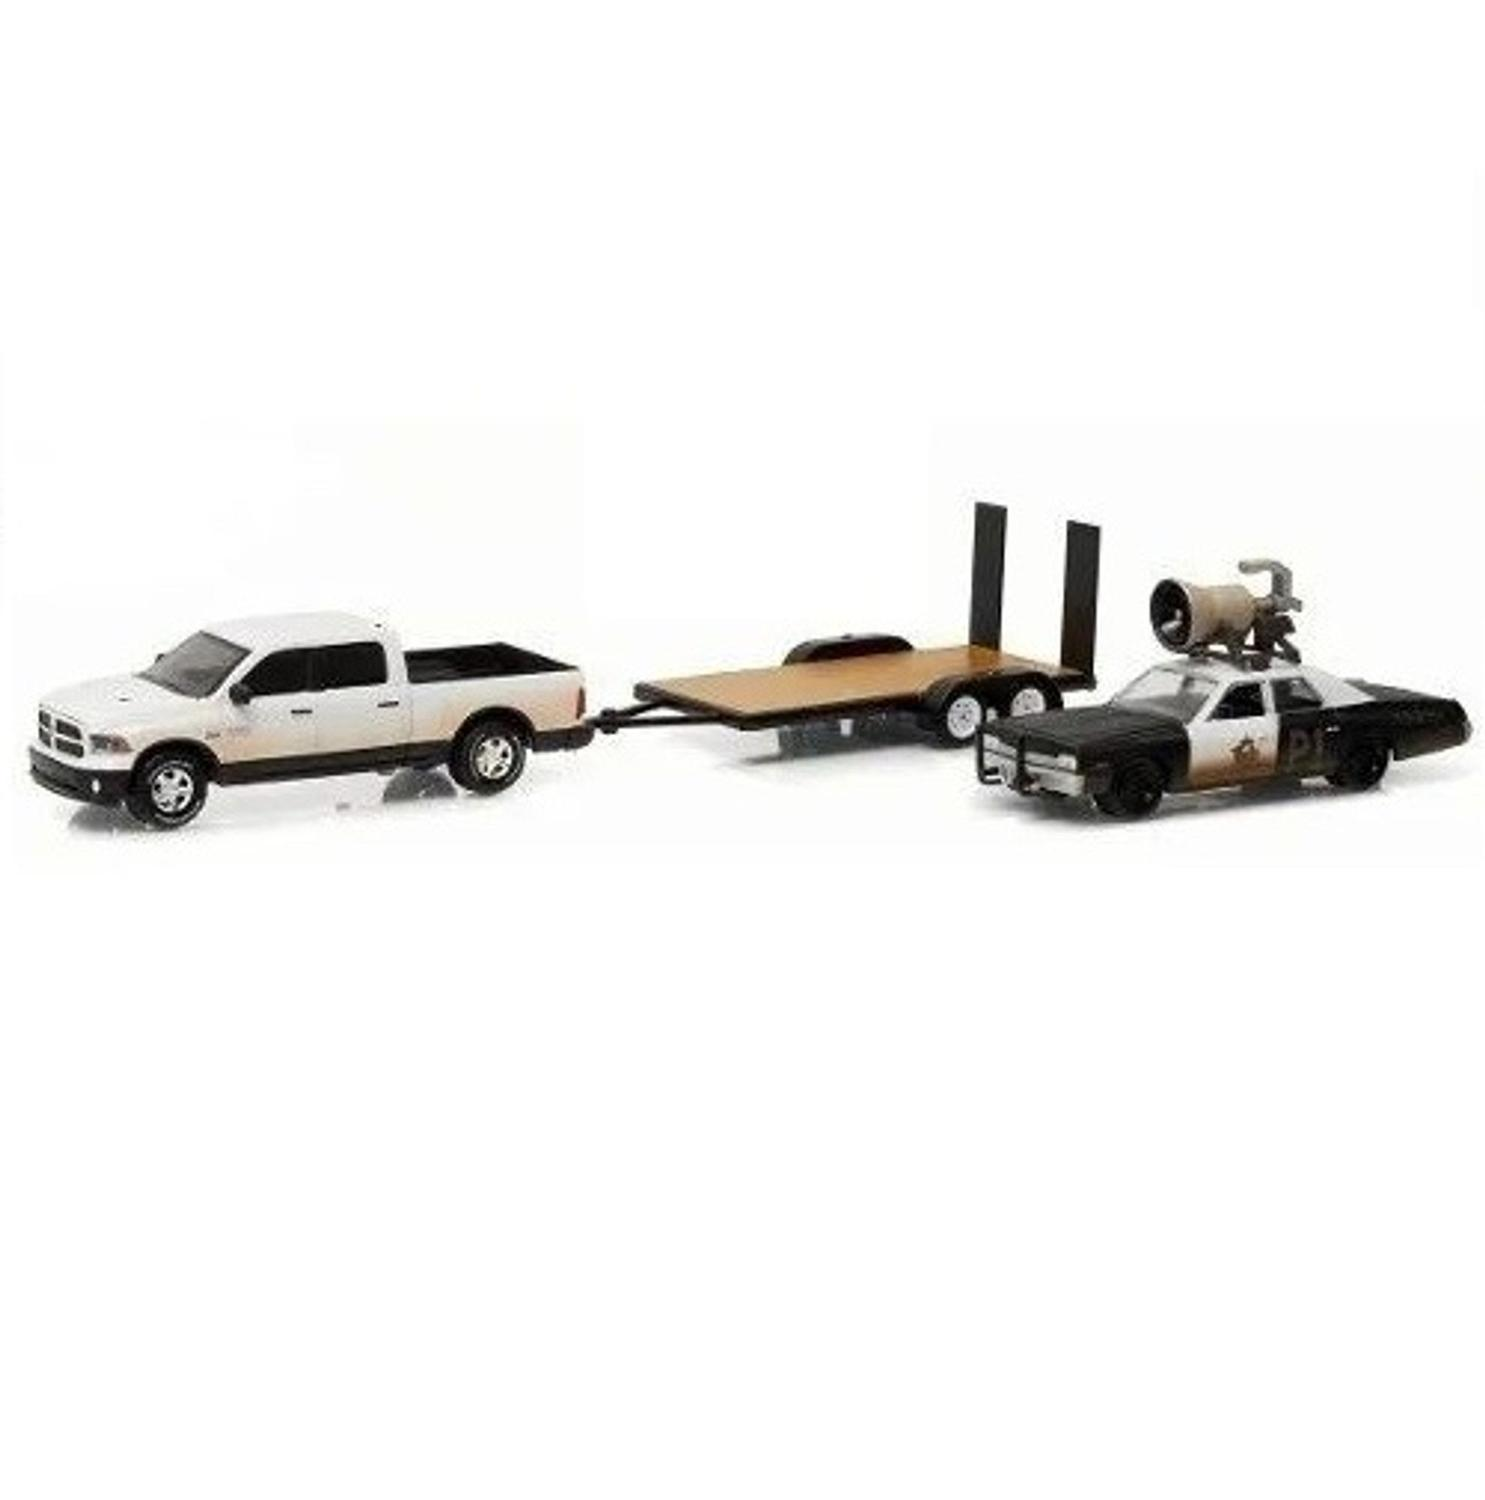 Miniatura Dodge Monaco Bluesmobile 1974 E Ram 1500 2015 Flatbed Trailer 1 64 Greenlight Carrinhos E Cia Magazine Luiza